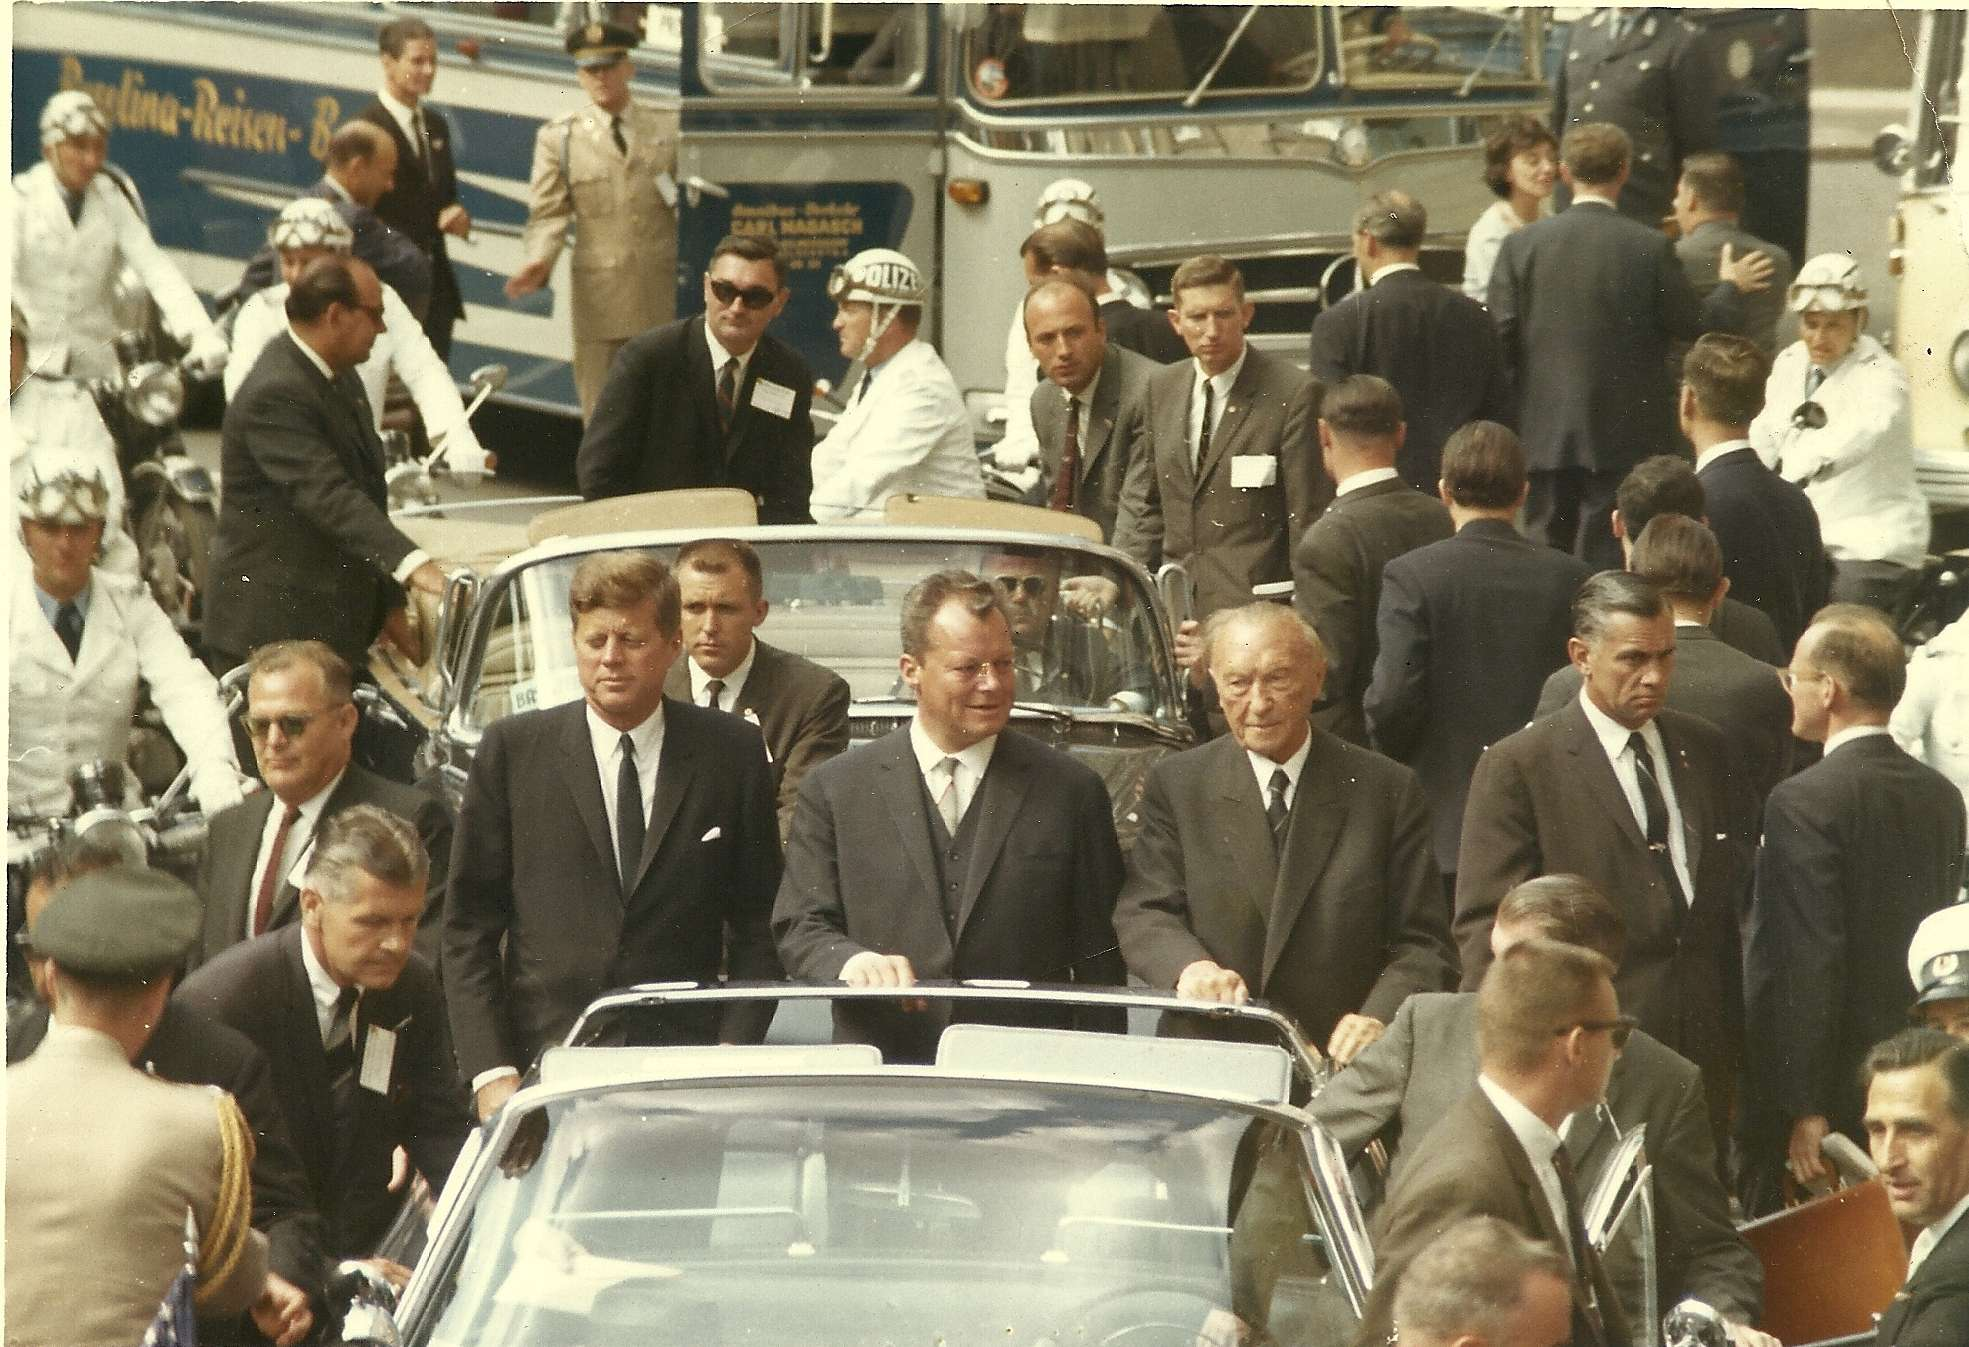 Berlin, West Germany, June 1963: Special Agents Win Lawson (REAR RIGHT) and Jerry Blaine (LEFT behind JFK) worked nearly a dozen motorcades during President KennedyÕs trip to Europe in June 1963.